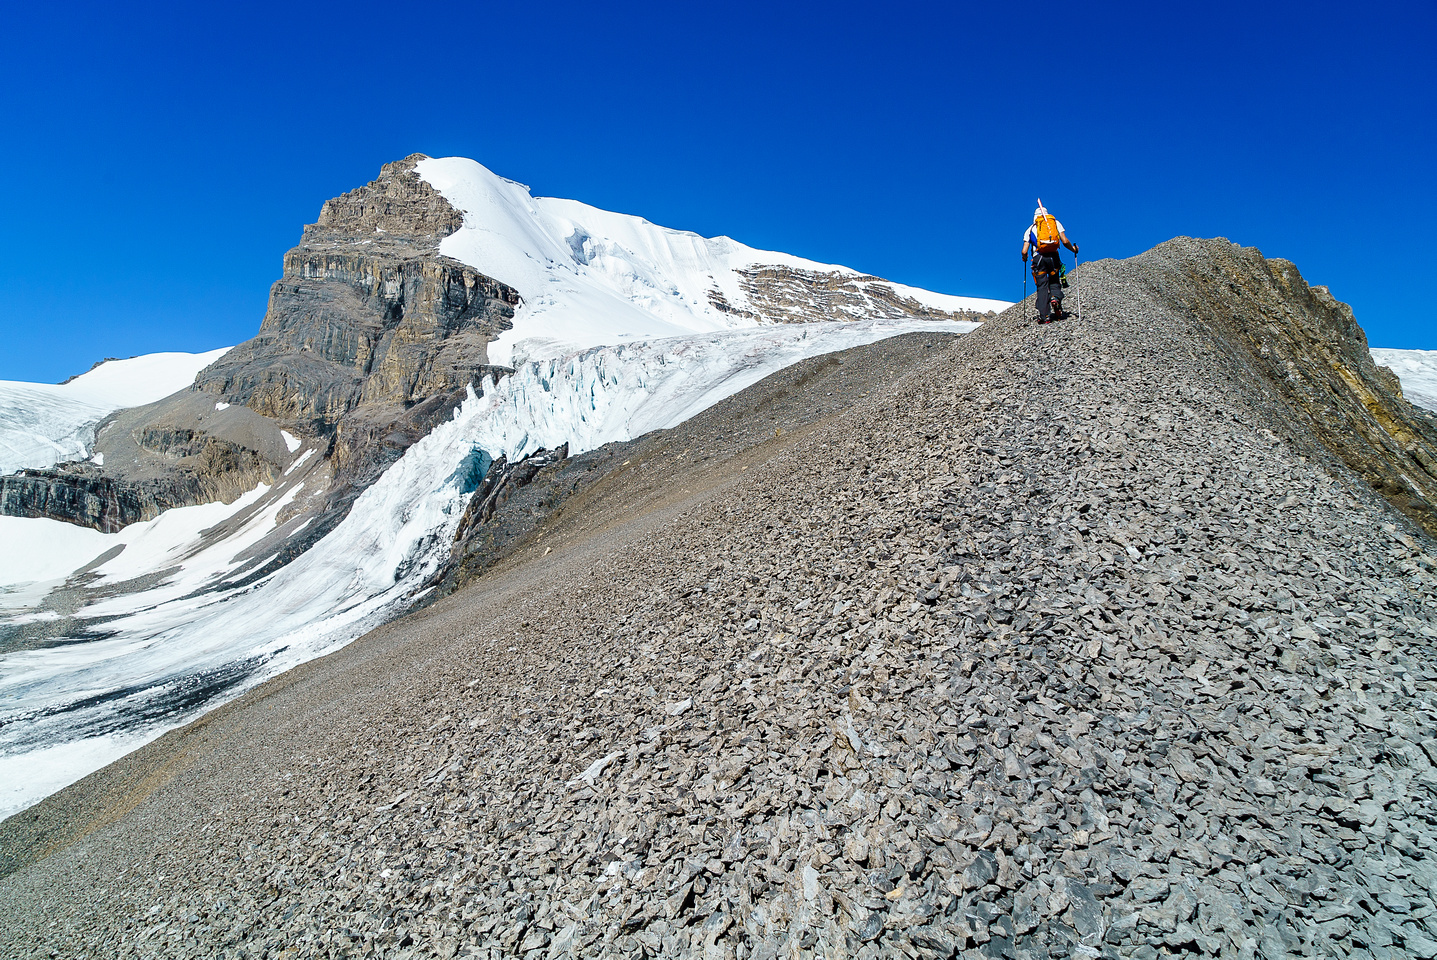 Ben makes his way up scree towards the glacial bench on Warren.